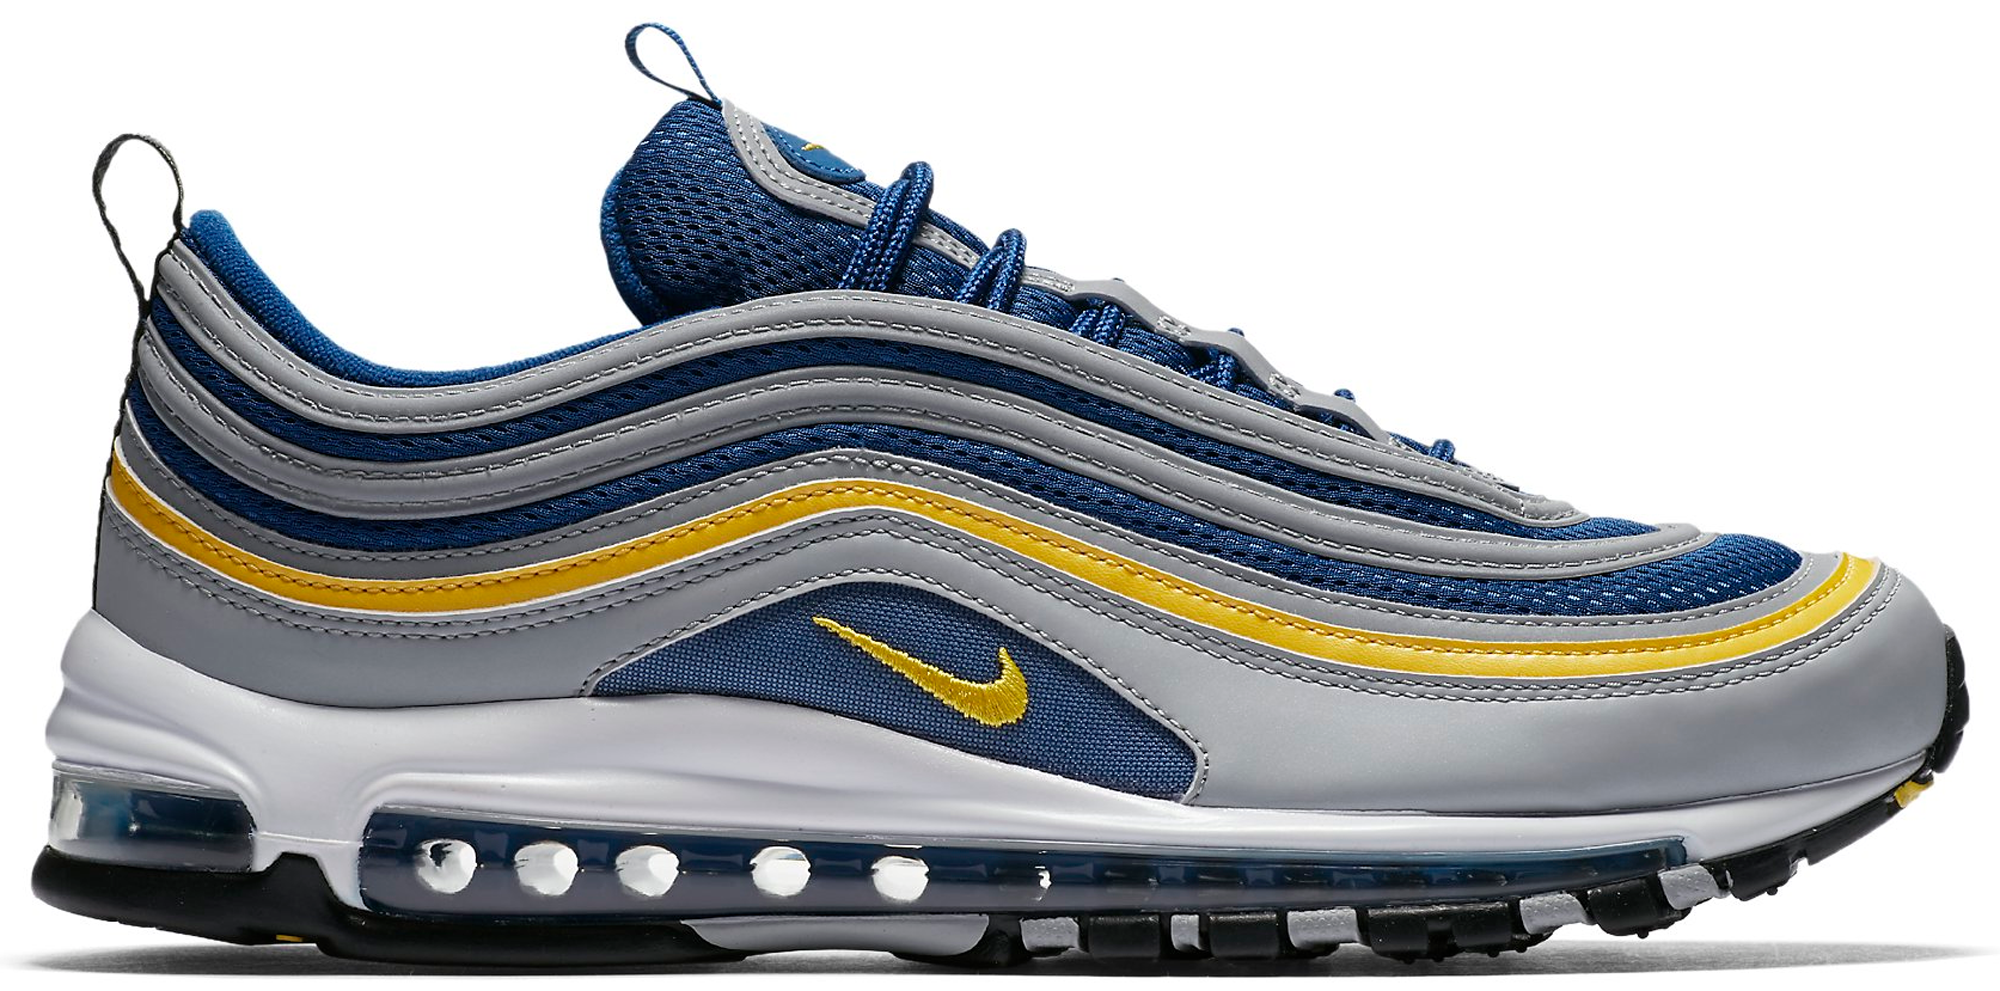 4b2d0e42de3d ... france air max 97 michigan 0cd55 de892 new arrivals nike ...